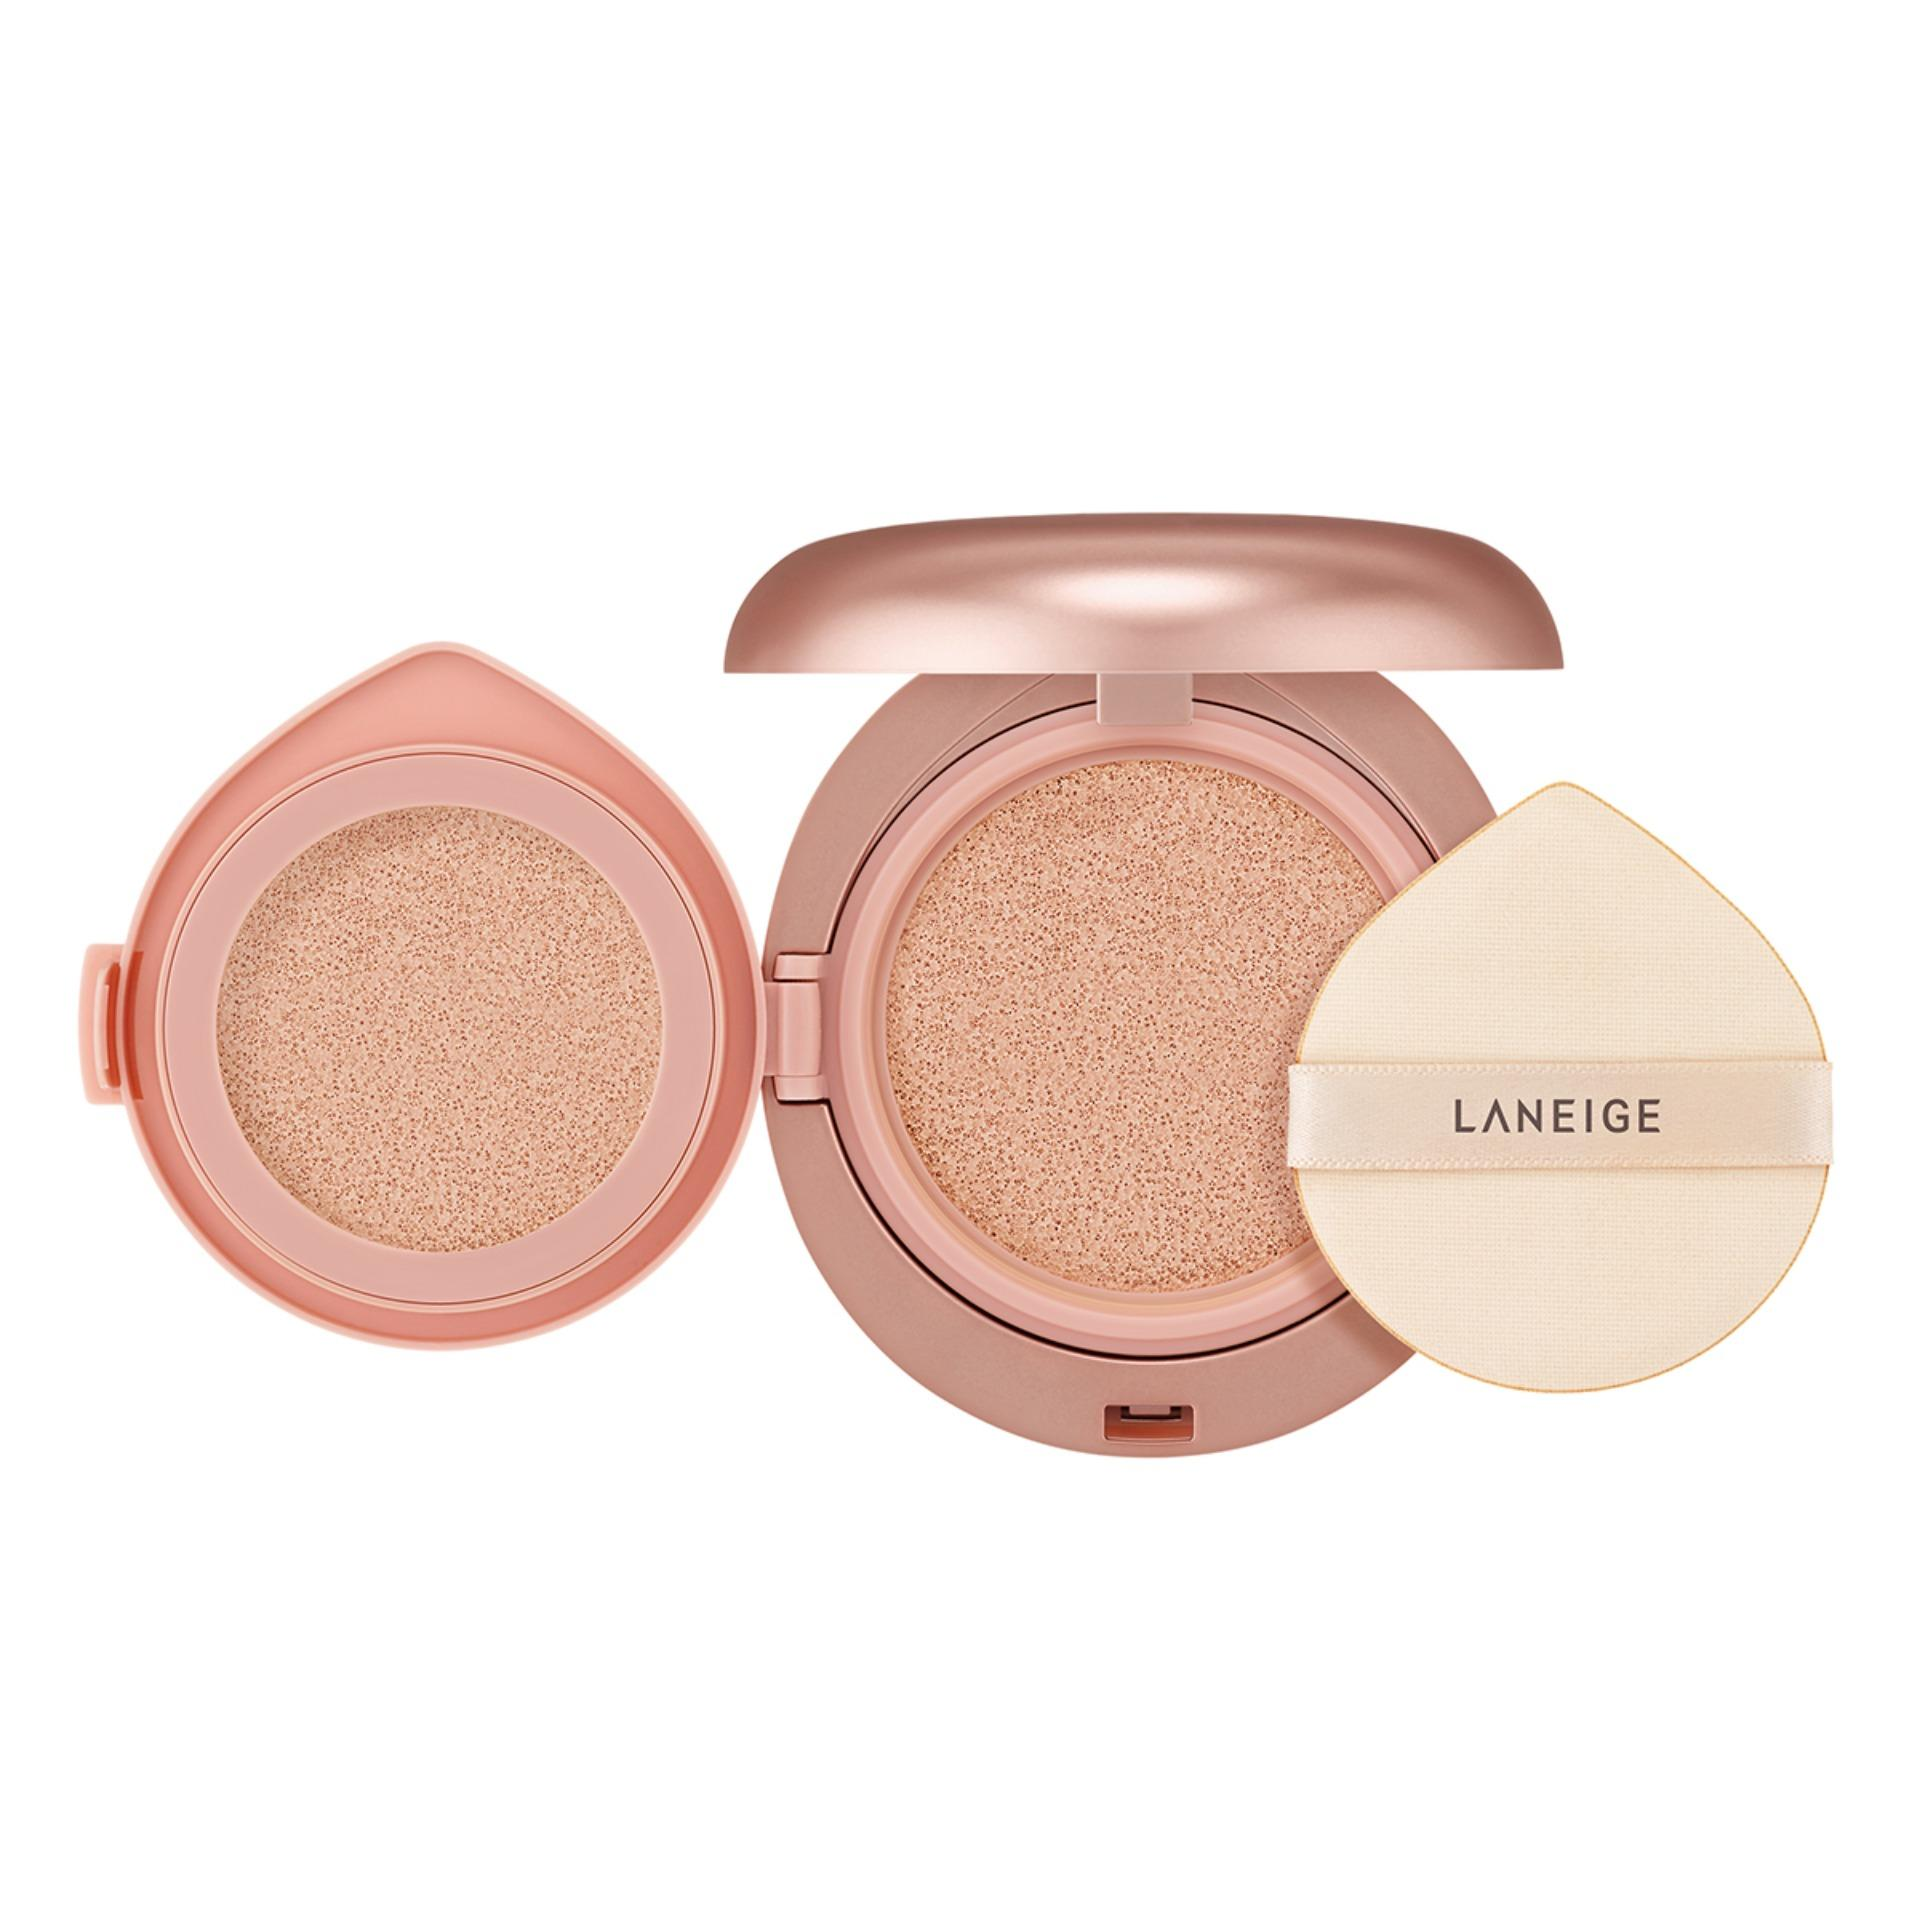 Laneige Layering Cover Cushion 14g + 2.5g [select From 7 Shades] By Laneige (capitaland Merchant).